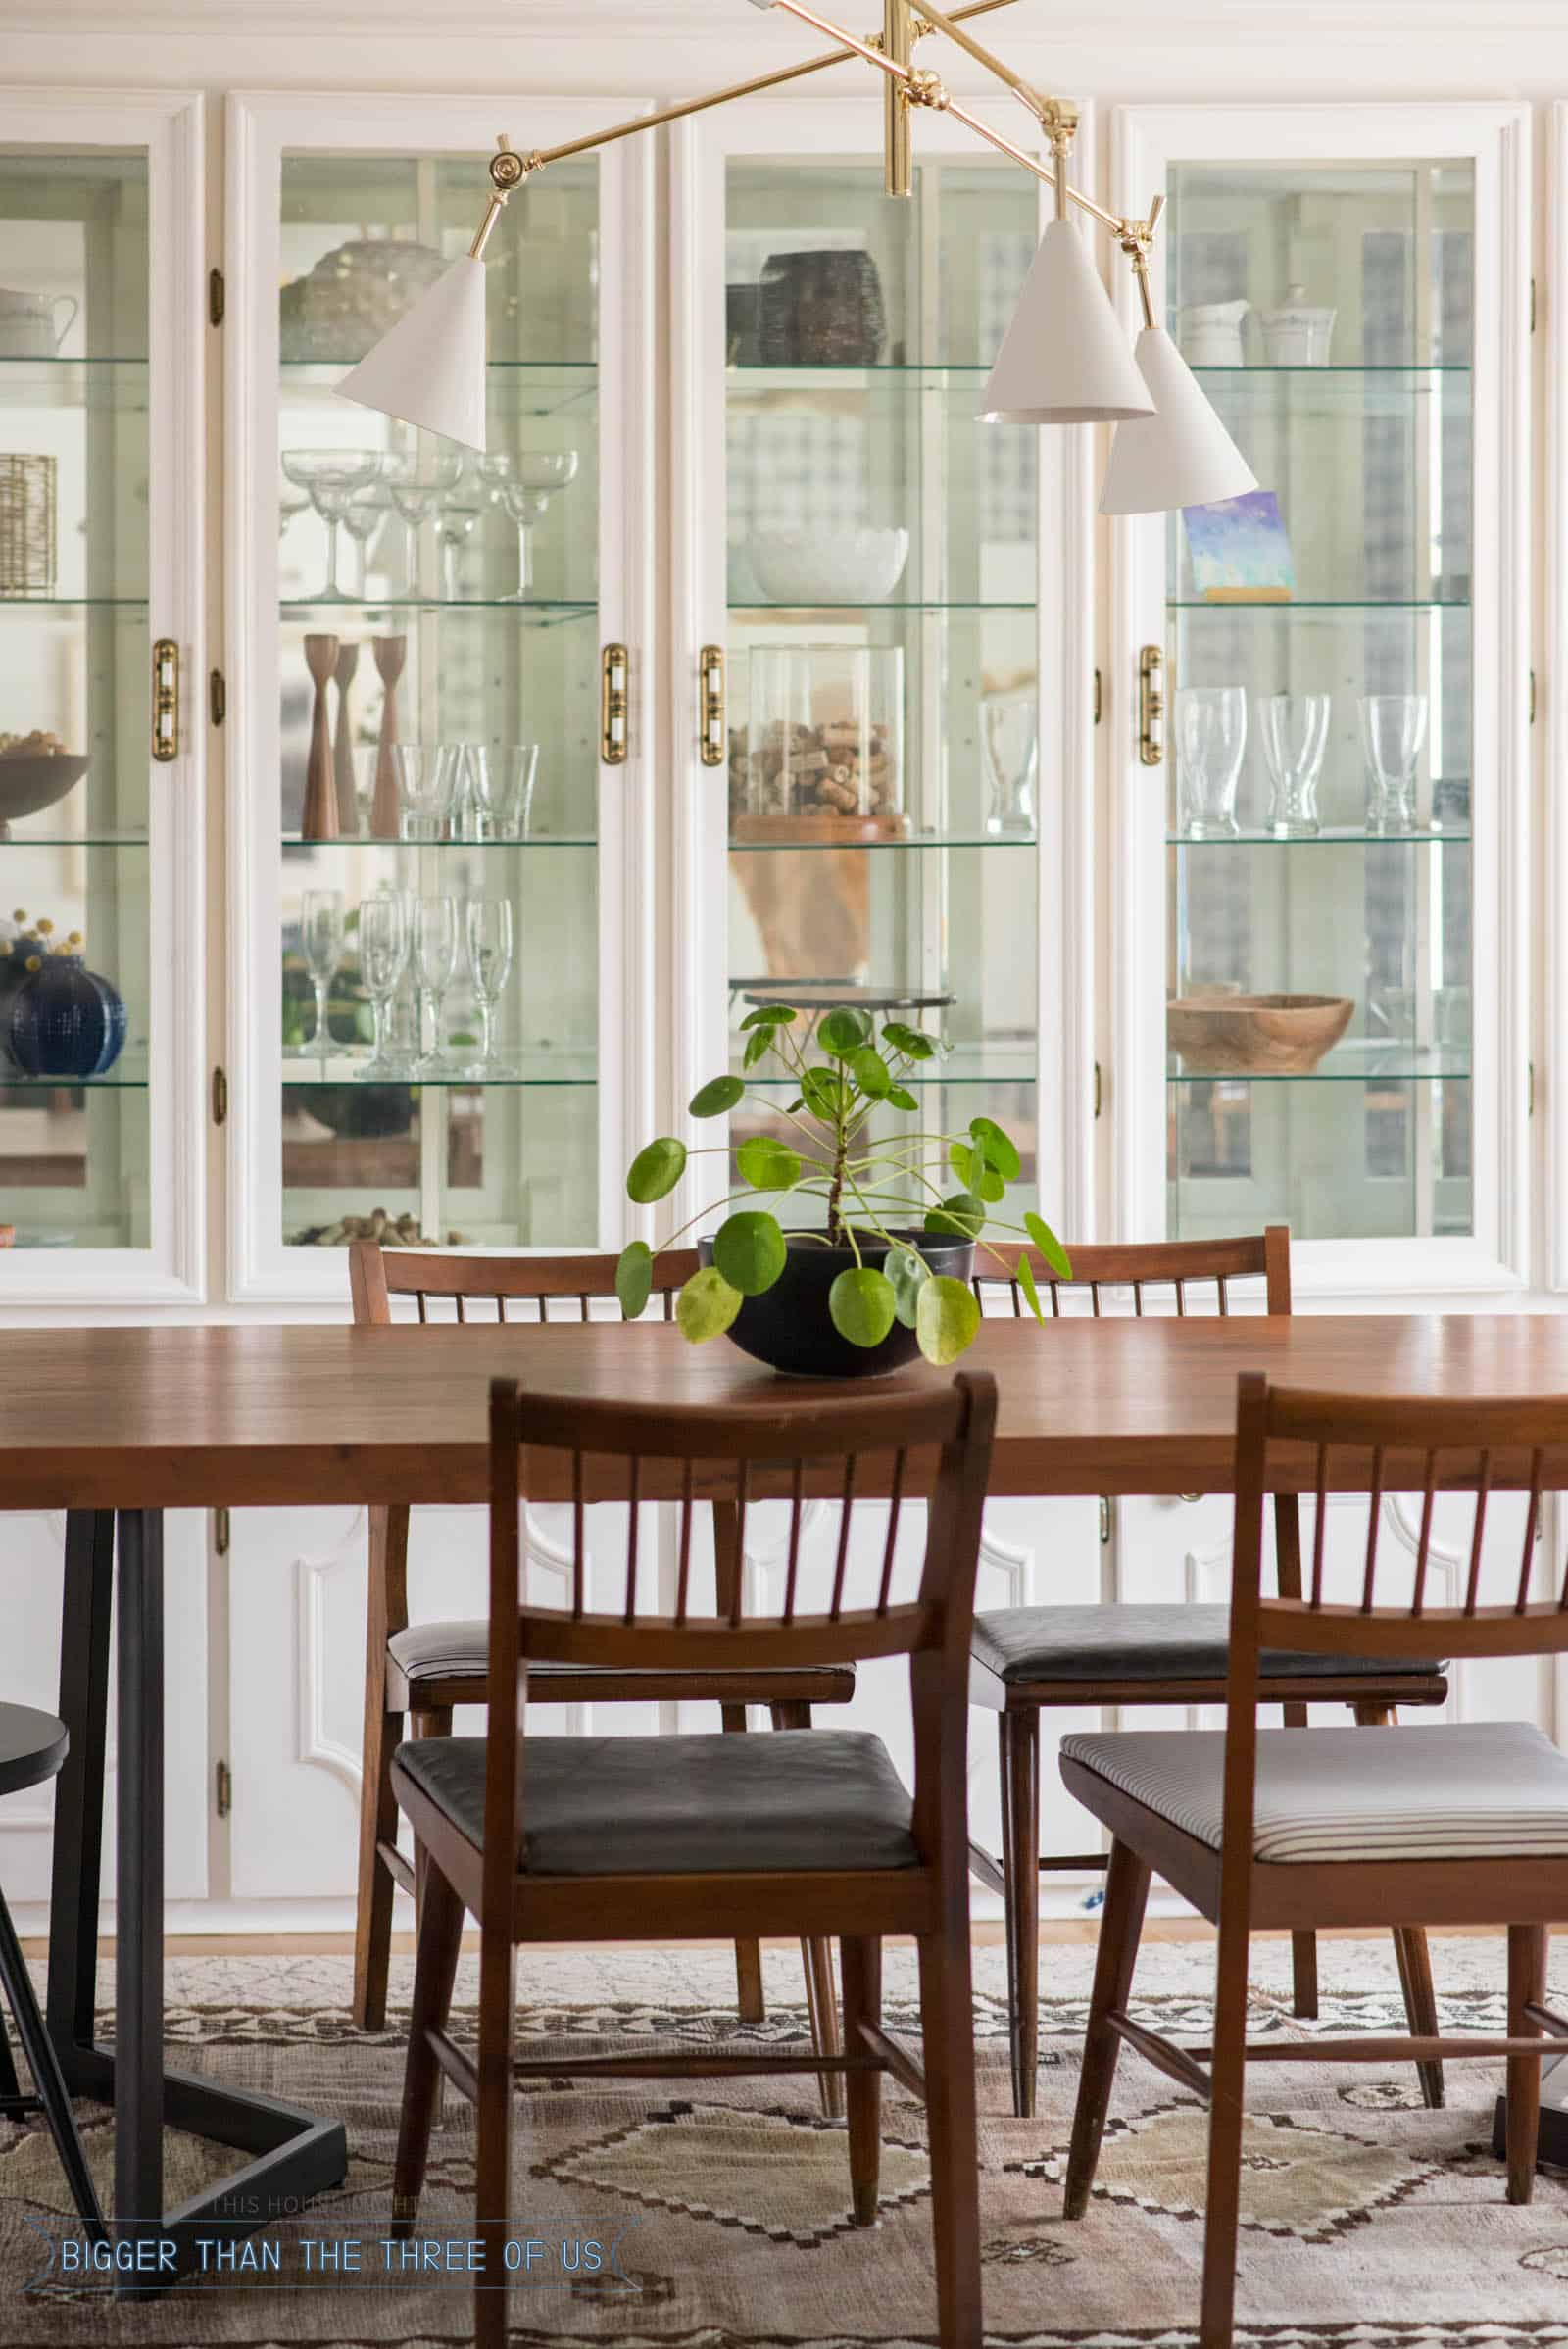 Leather upholstered midcentury chairs with black spindle chairs in dining room